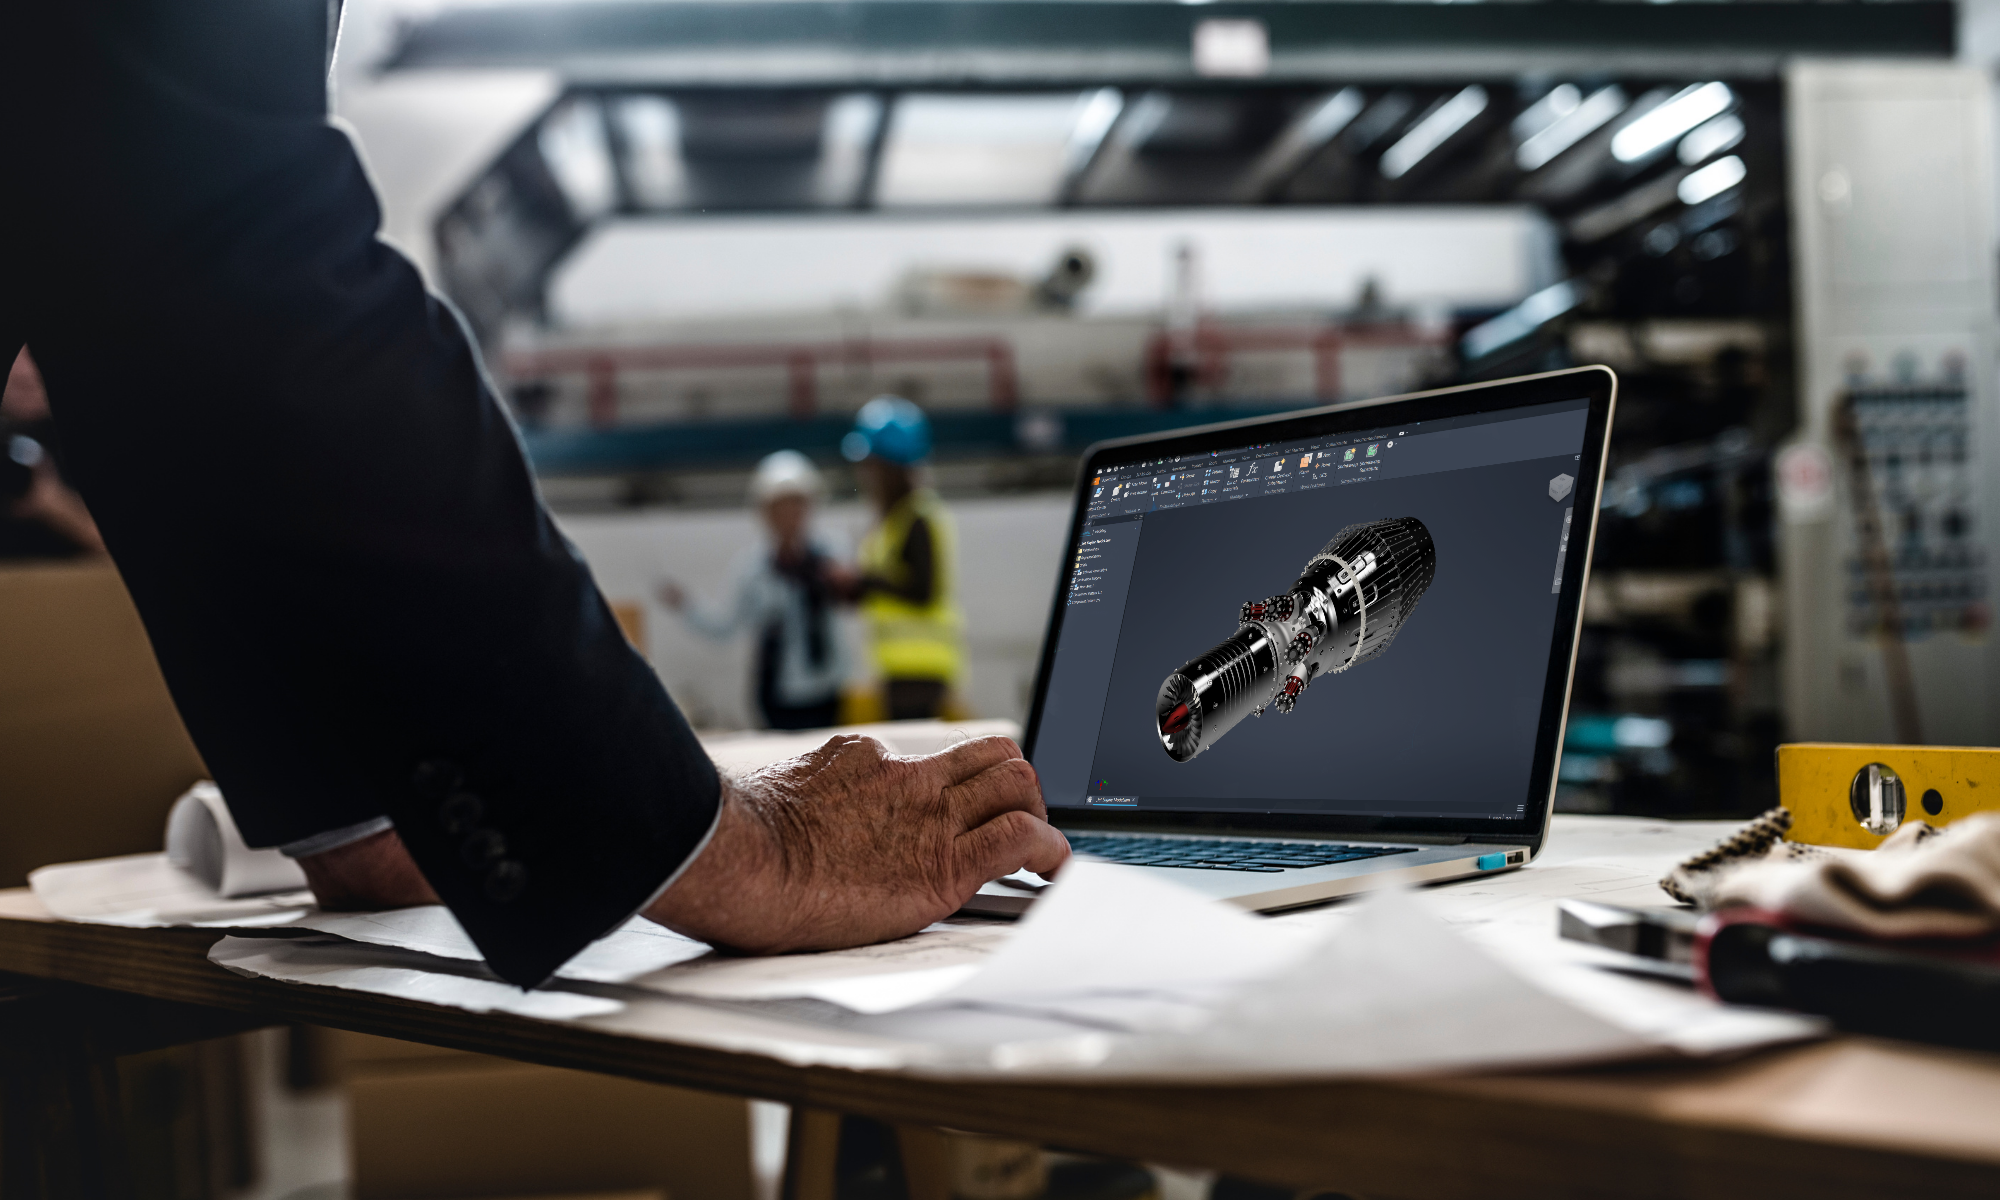 What's new in Inventor 2021